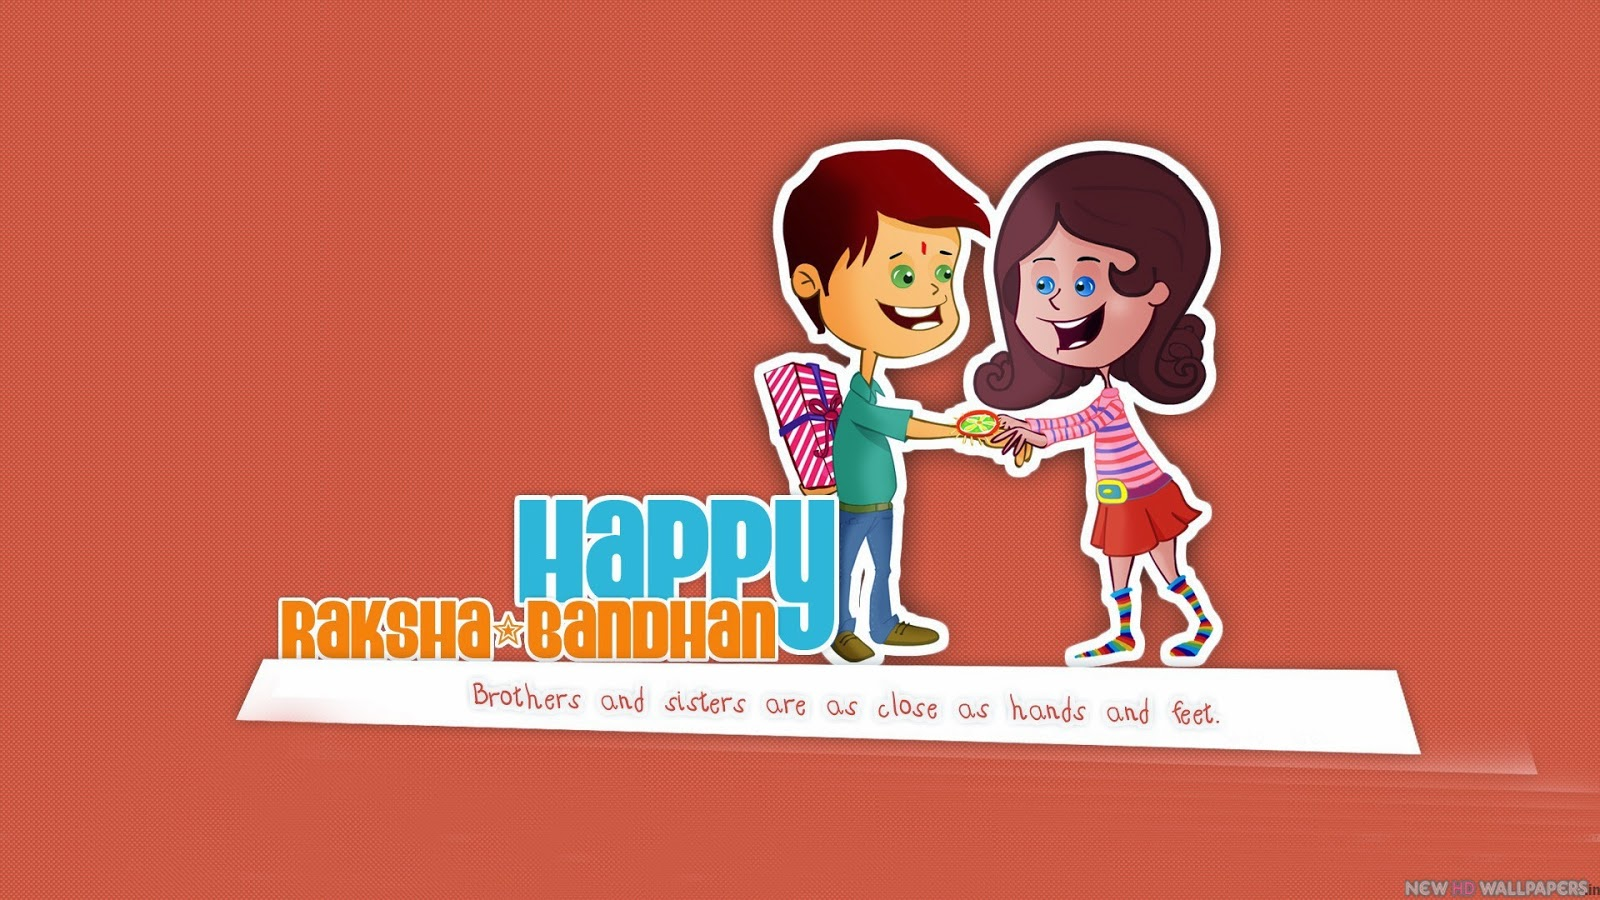 raksha bandhan 2014 sms messages quotes and many more rakhi rakhi are one of the best among all options that create a special aura on the festival this web page consists of various